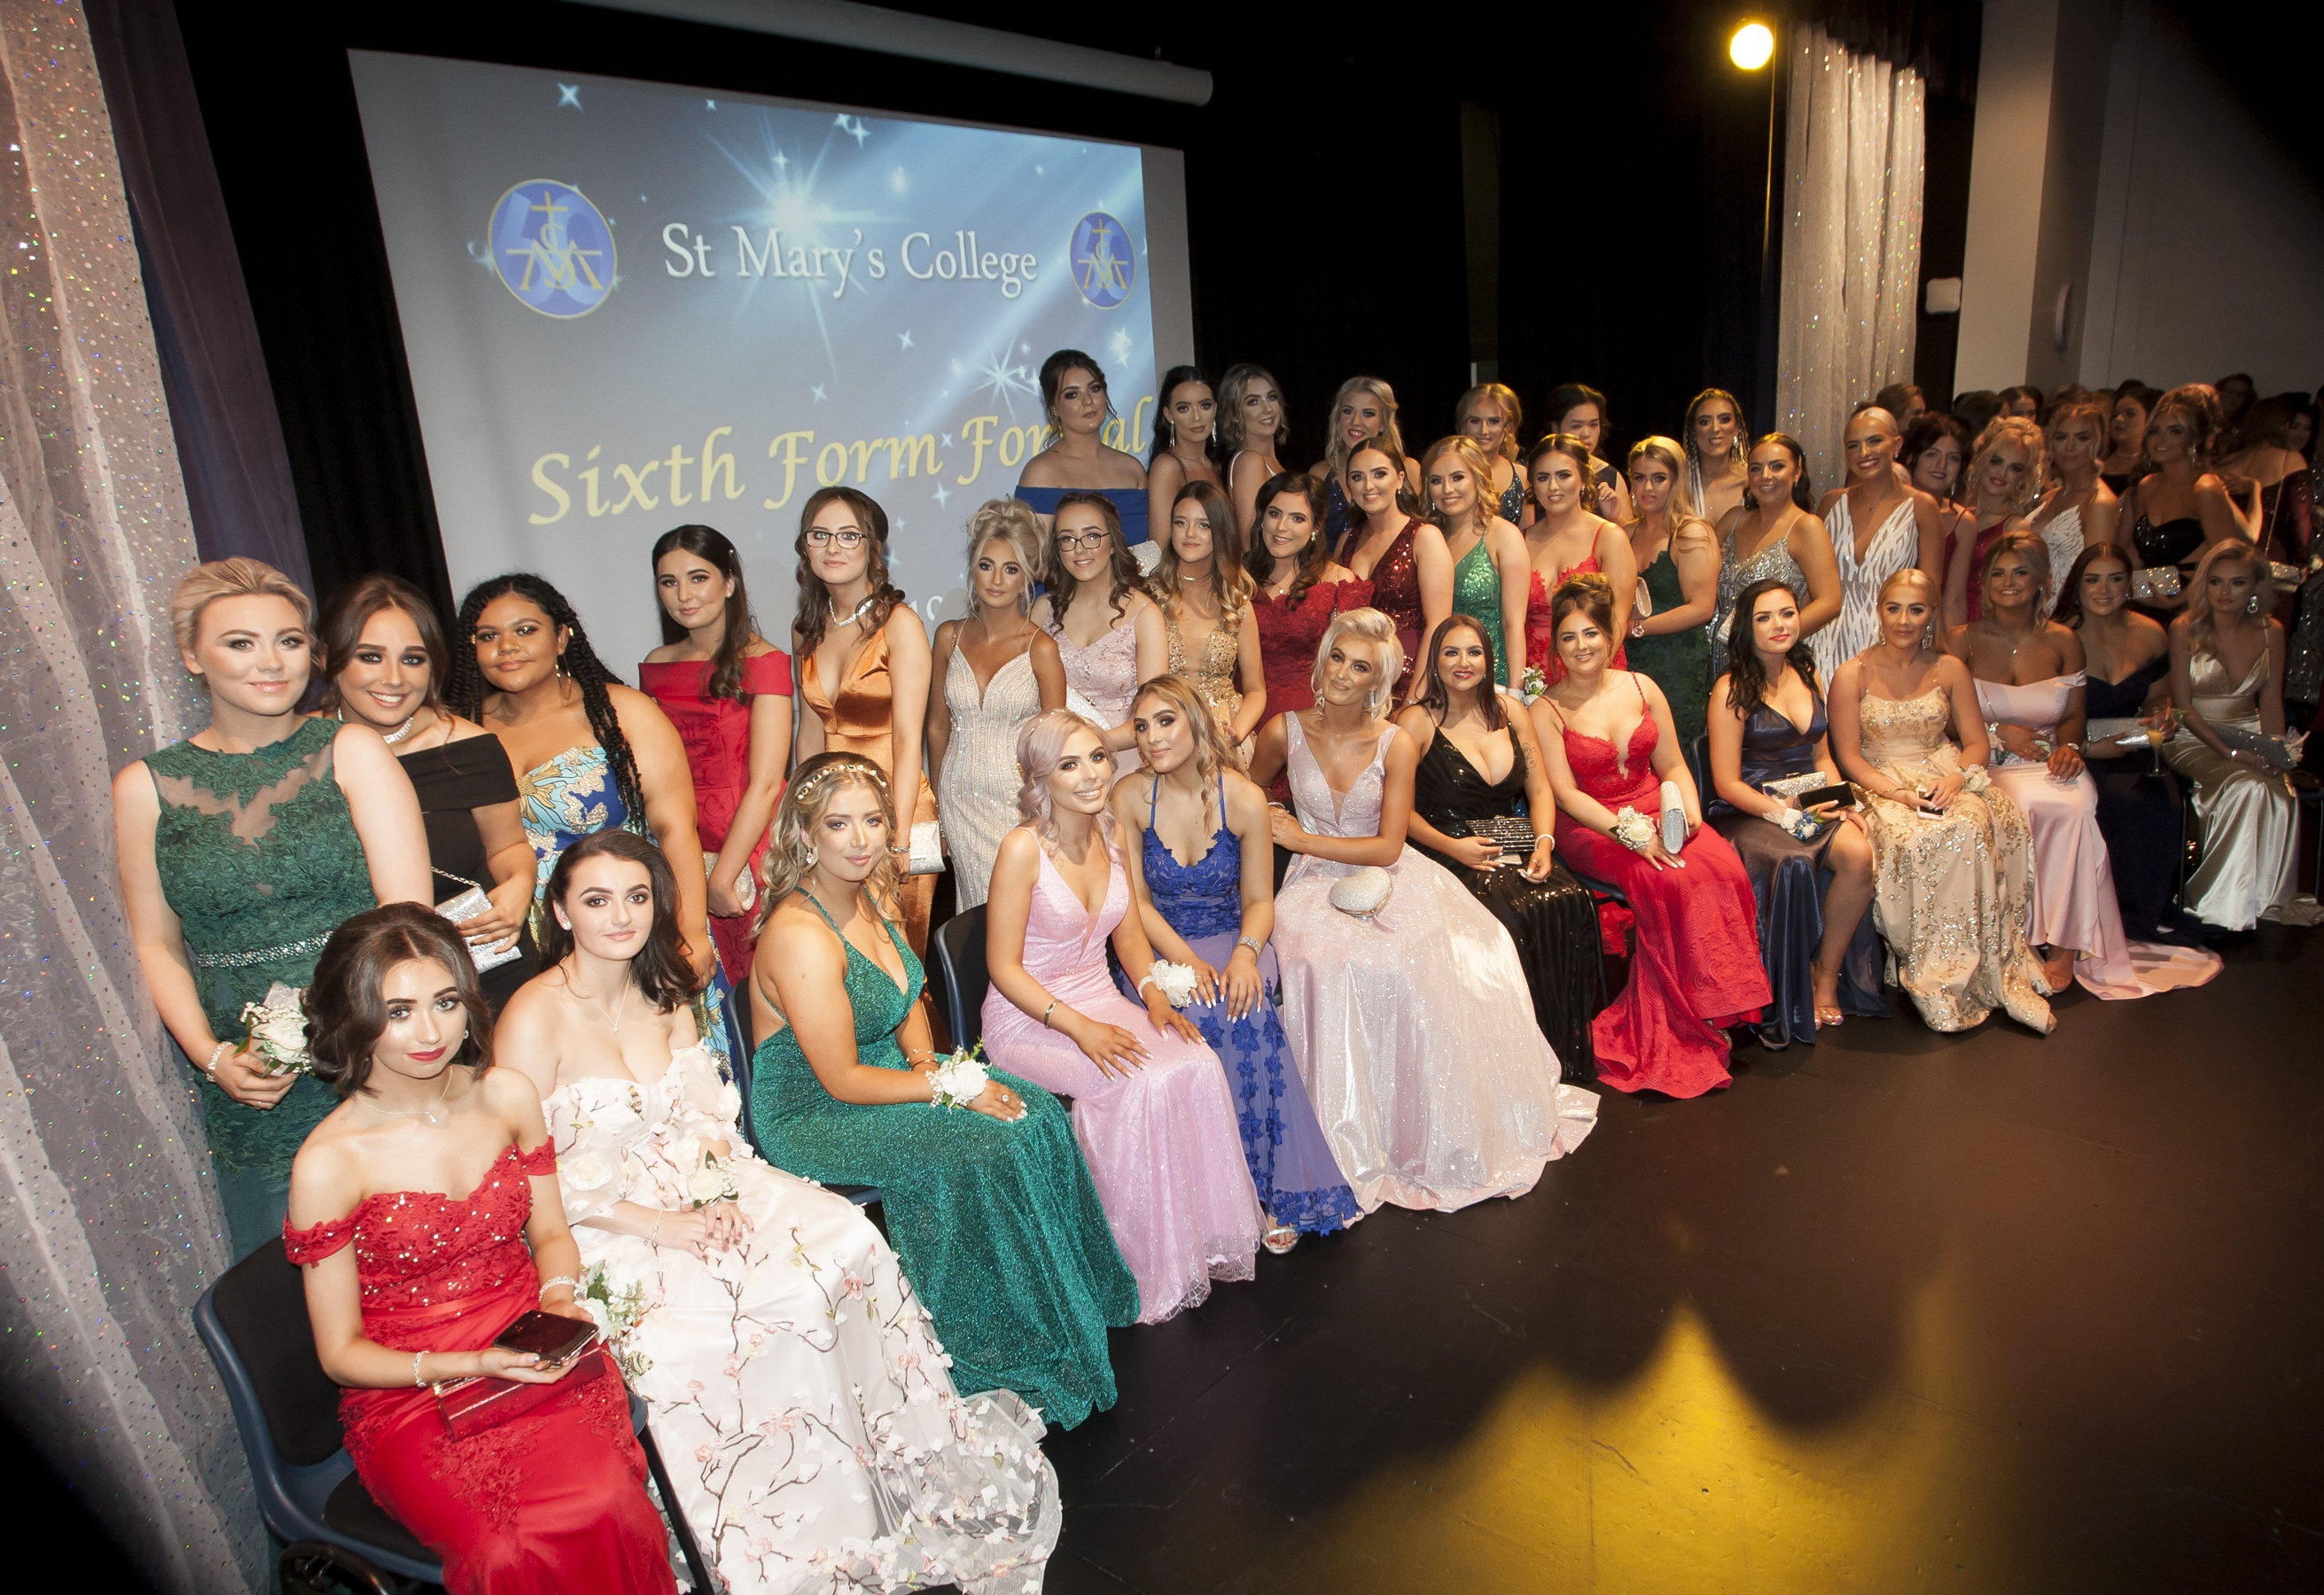 CLASS OF '19. . . .Some of the Class of 2019 pictured at the St. Mary's College Annual Formal on Thursday night last. (Photos: Jim McCafferty Photography)